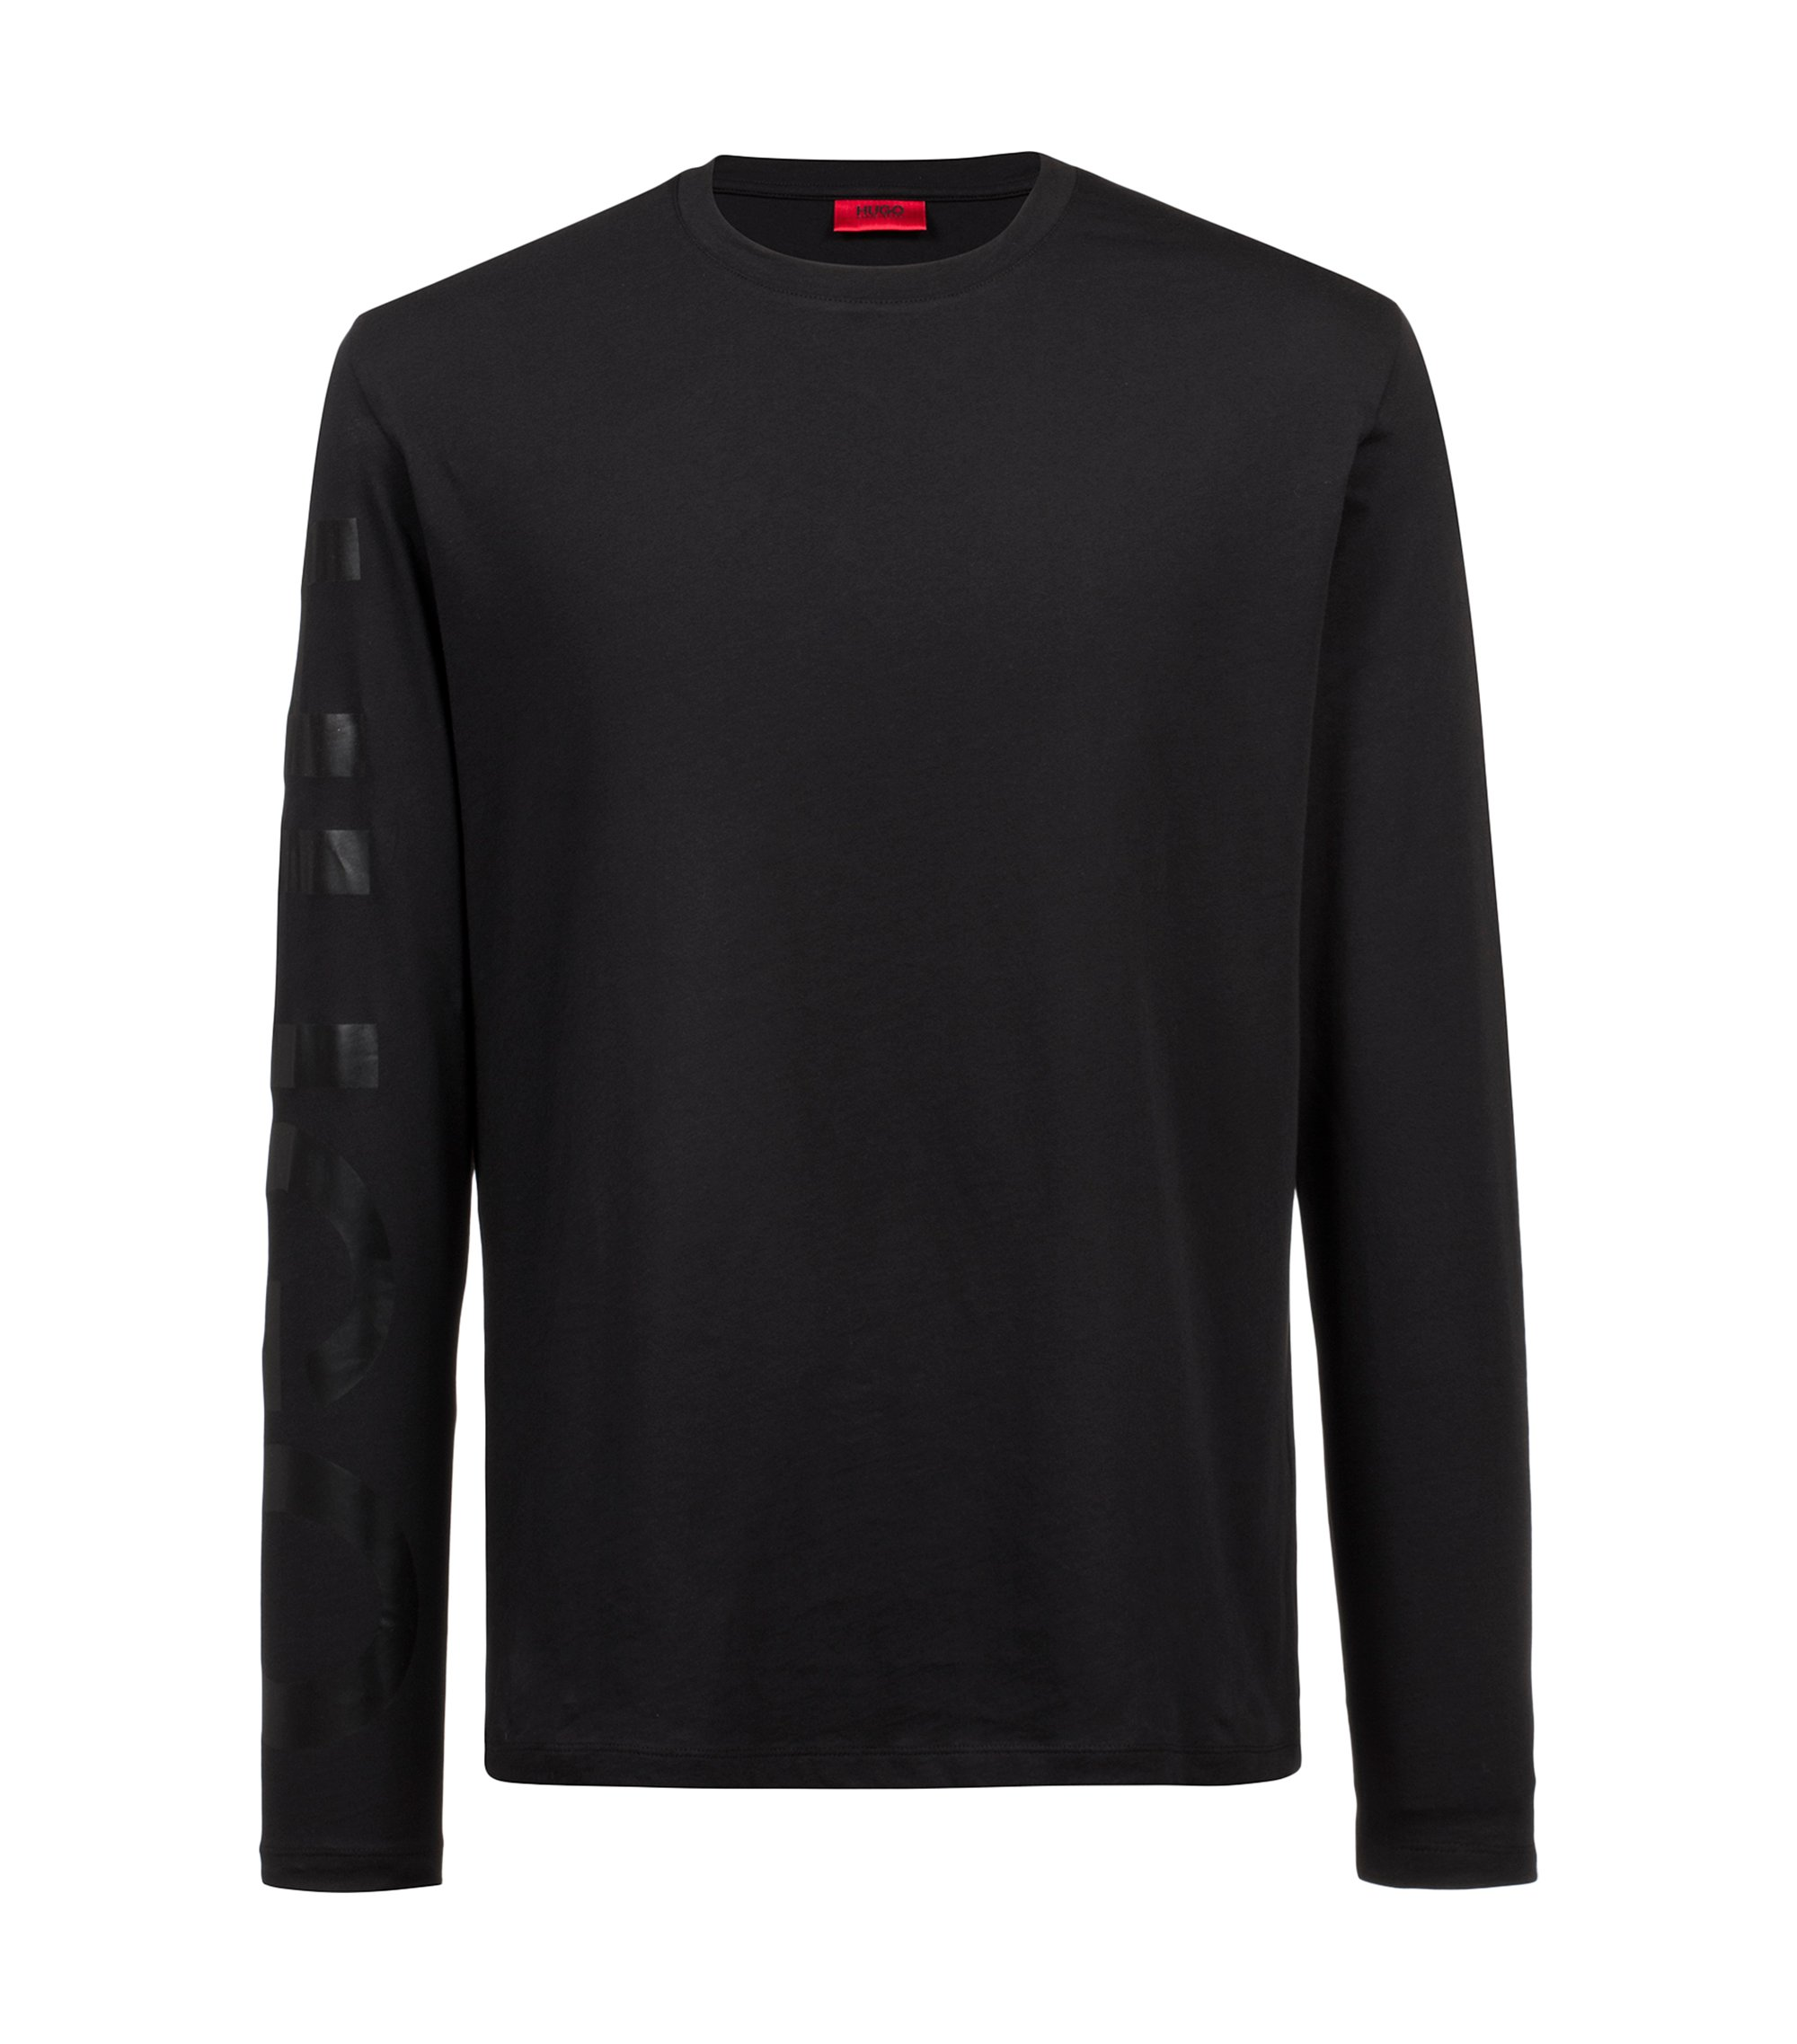 Oversized-fit T-shirt in cotton with large sleeve logo, Black